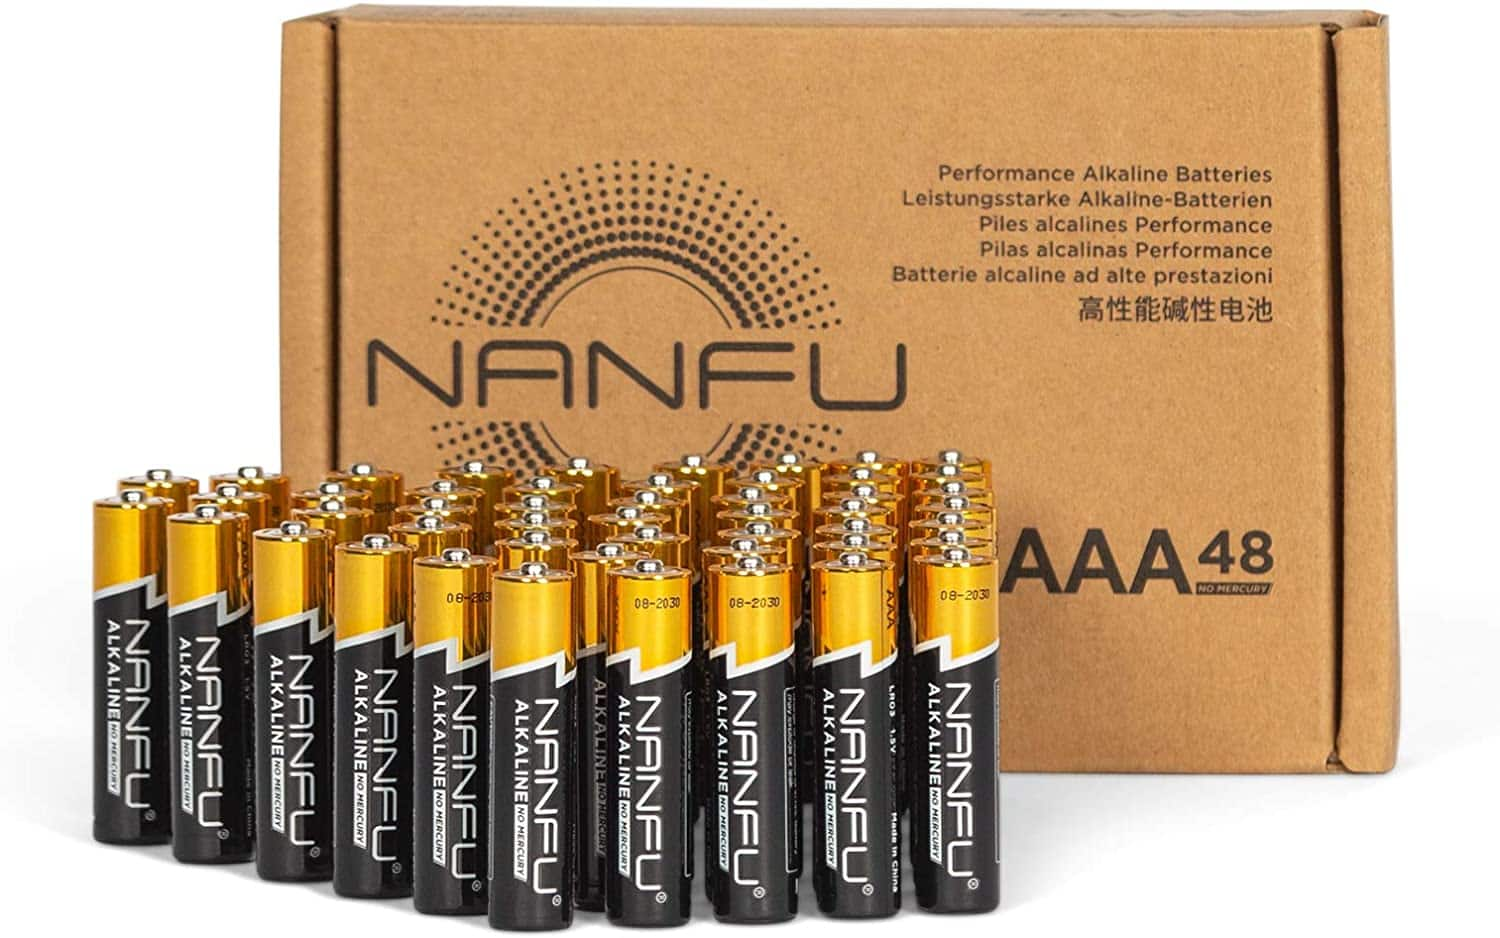 48-Ct NANFU High Performance AAA Alkaline Batteries $11 @ Amazon